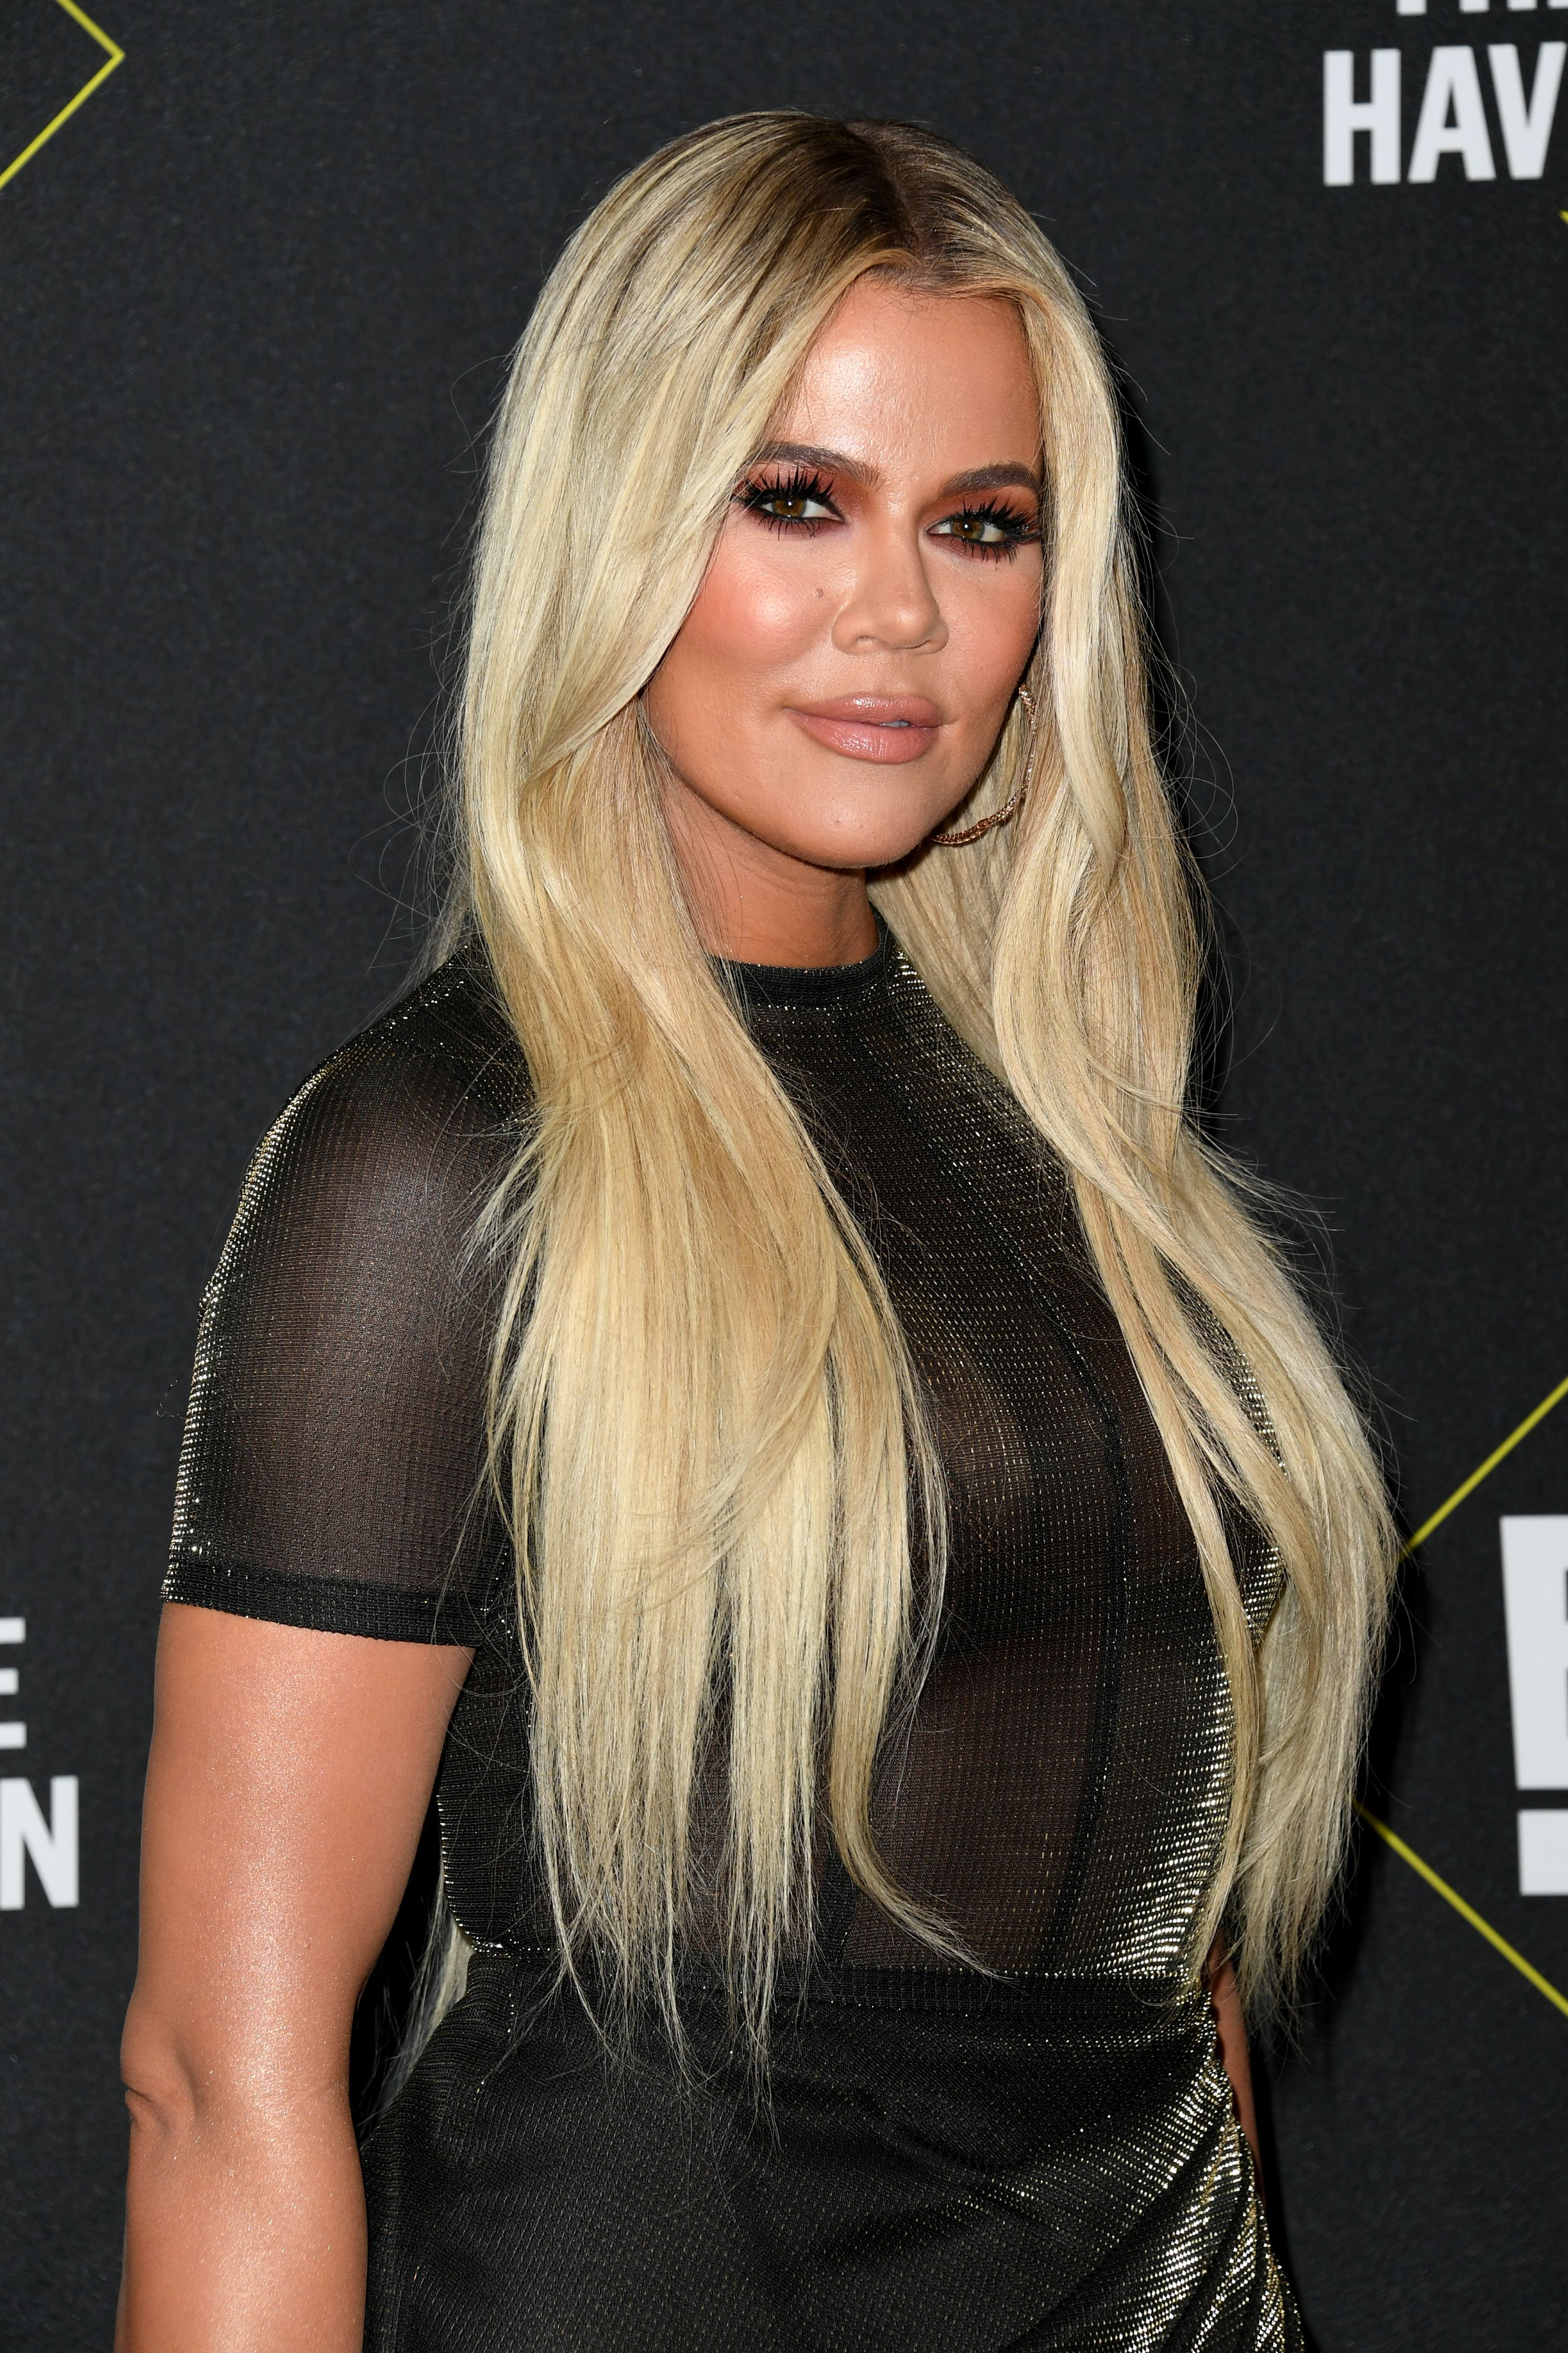 Khloe Kardashian's Newly Reorganized House Has an Entire Room for Her Hair Extensions